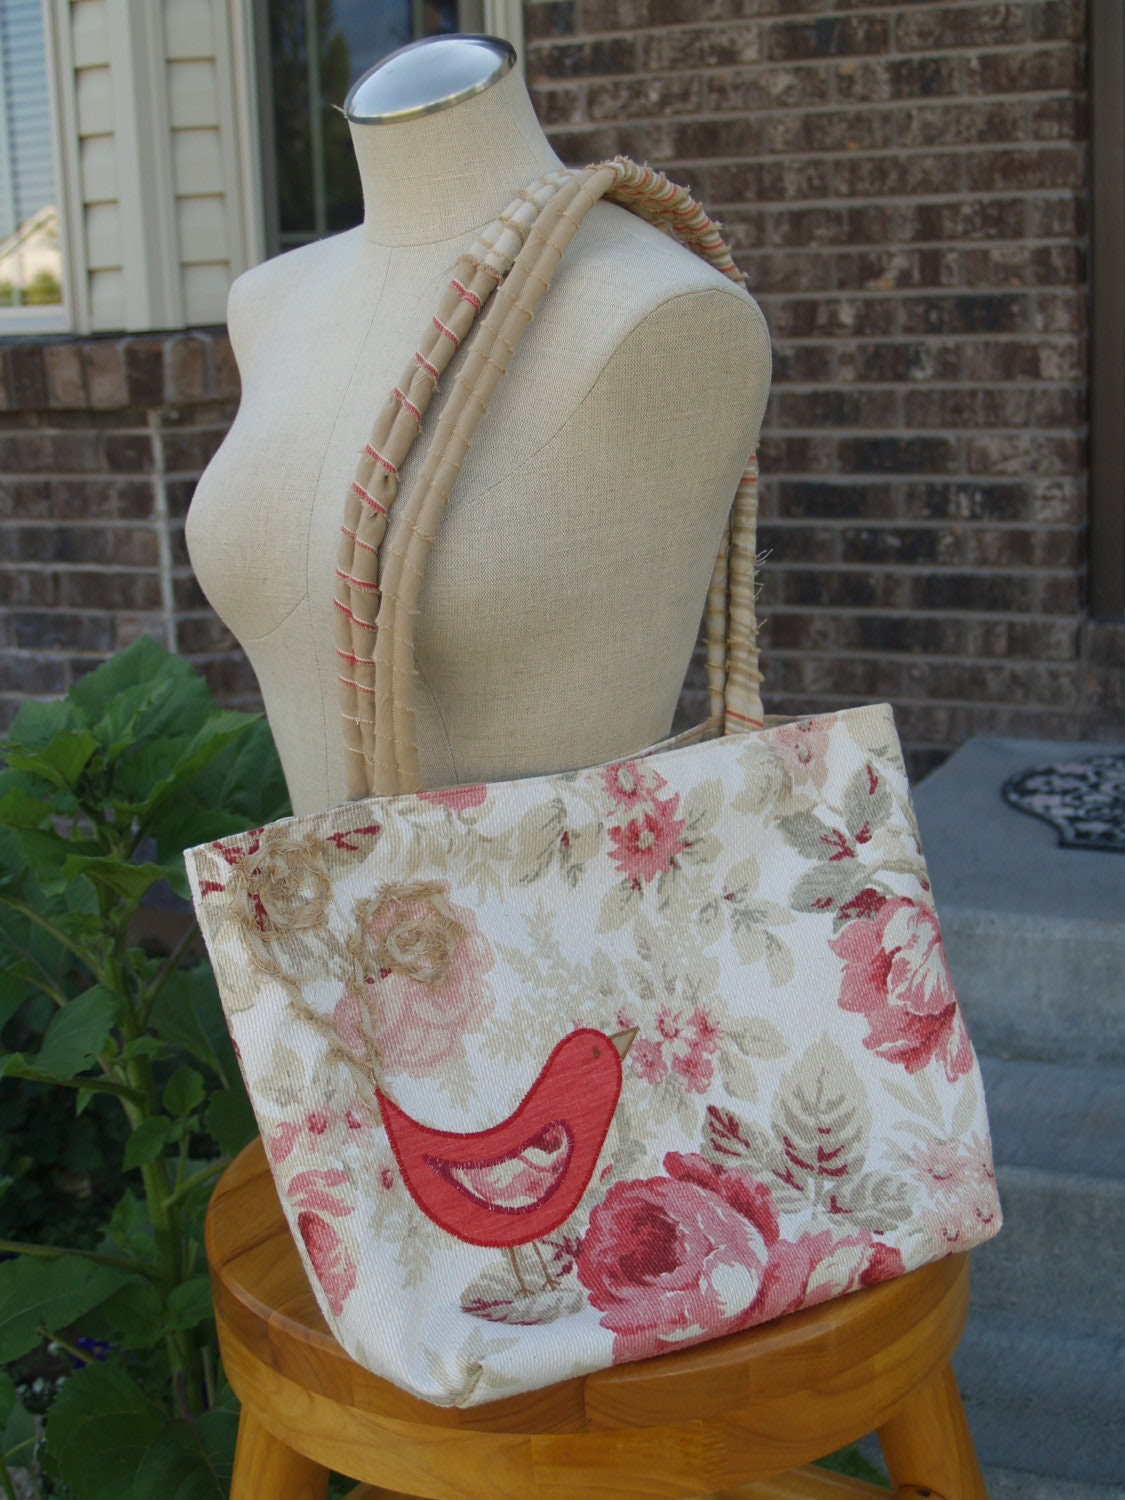 Hand Made Large Pink and White Floral Purse with Appliqued Bird